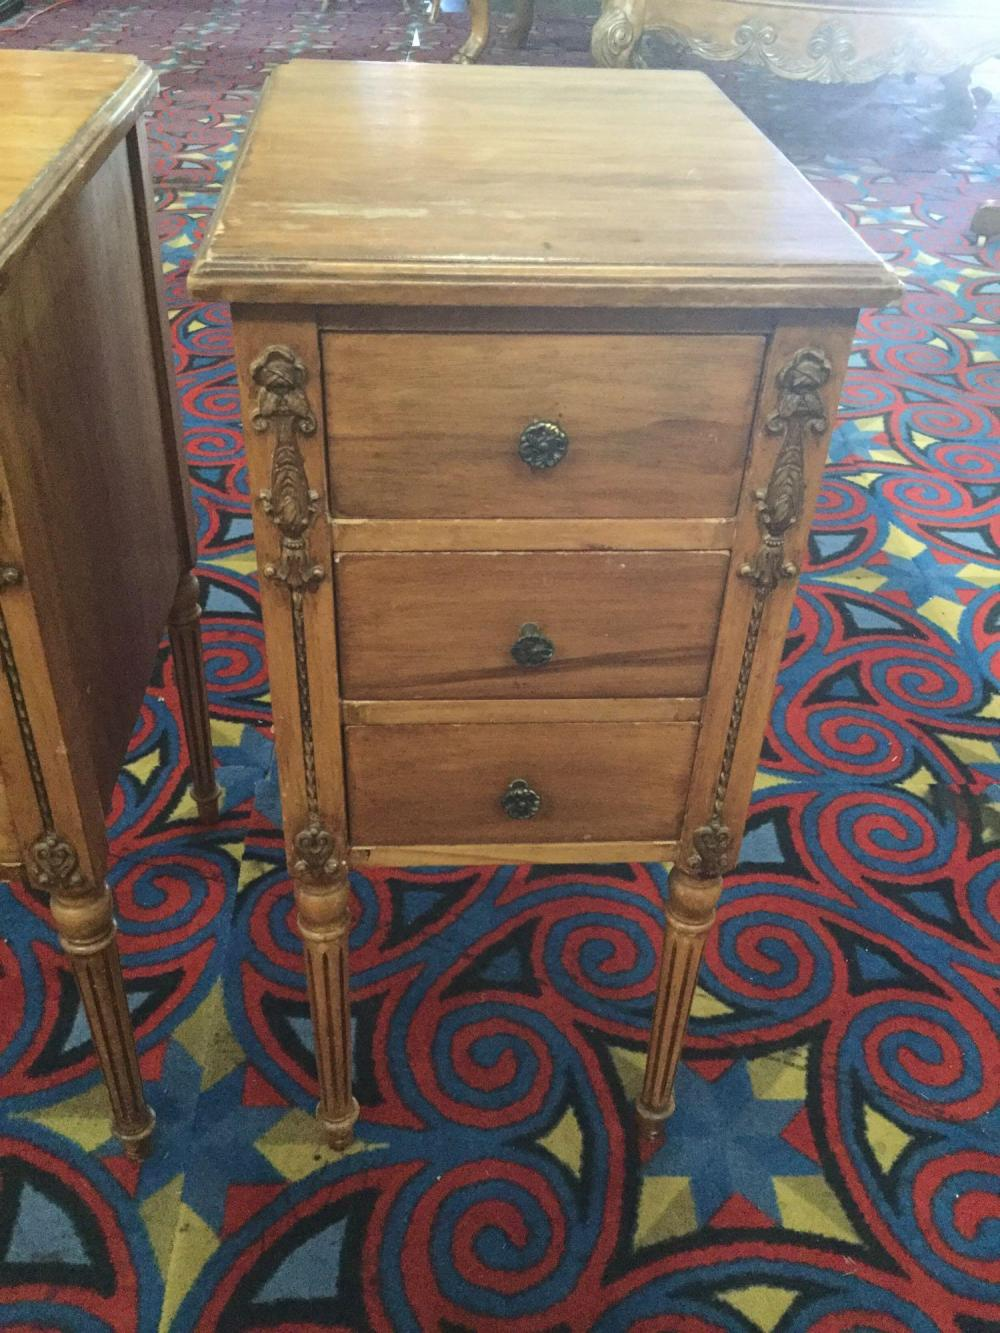 Lot 227: Pair of antique wood night stands w/ 3 drawers and detailed legs